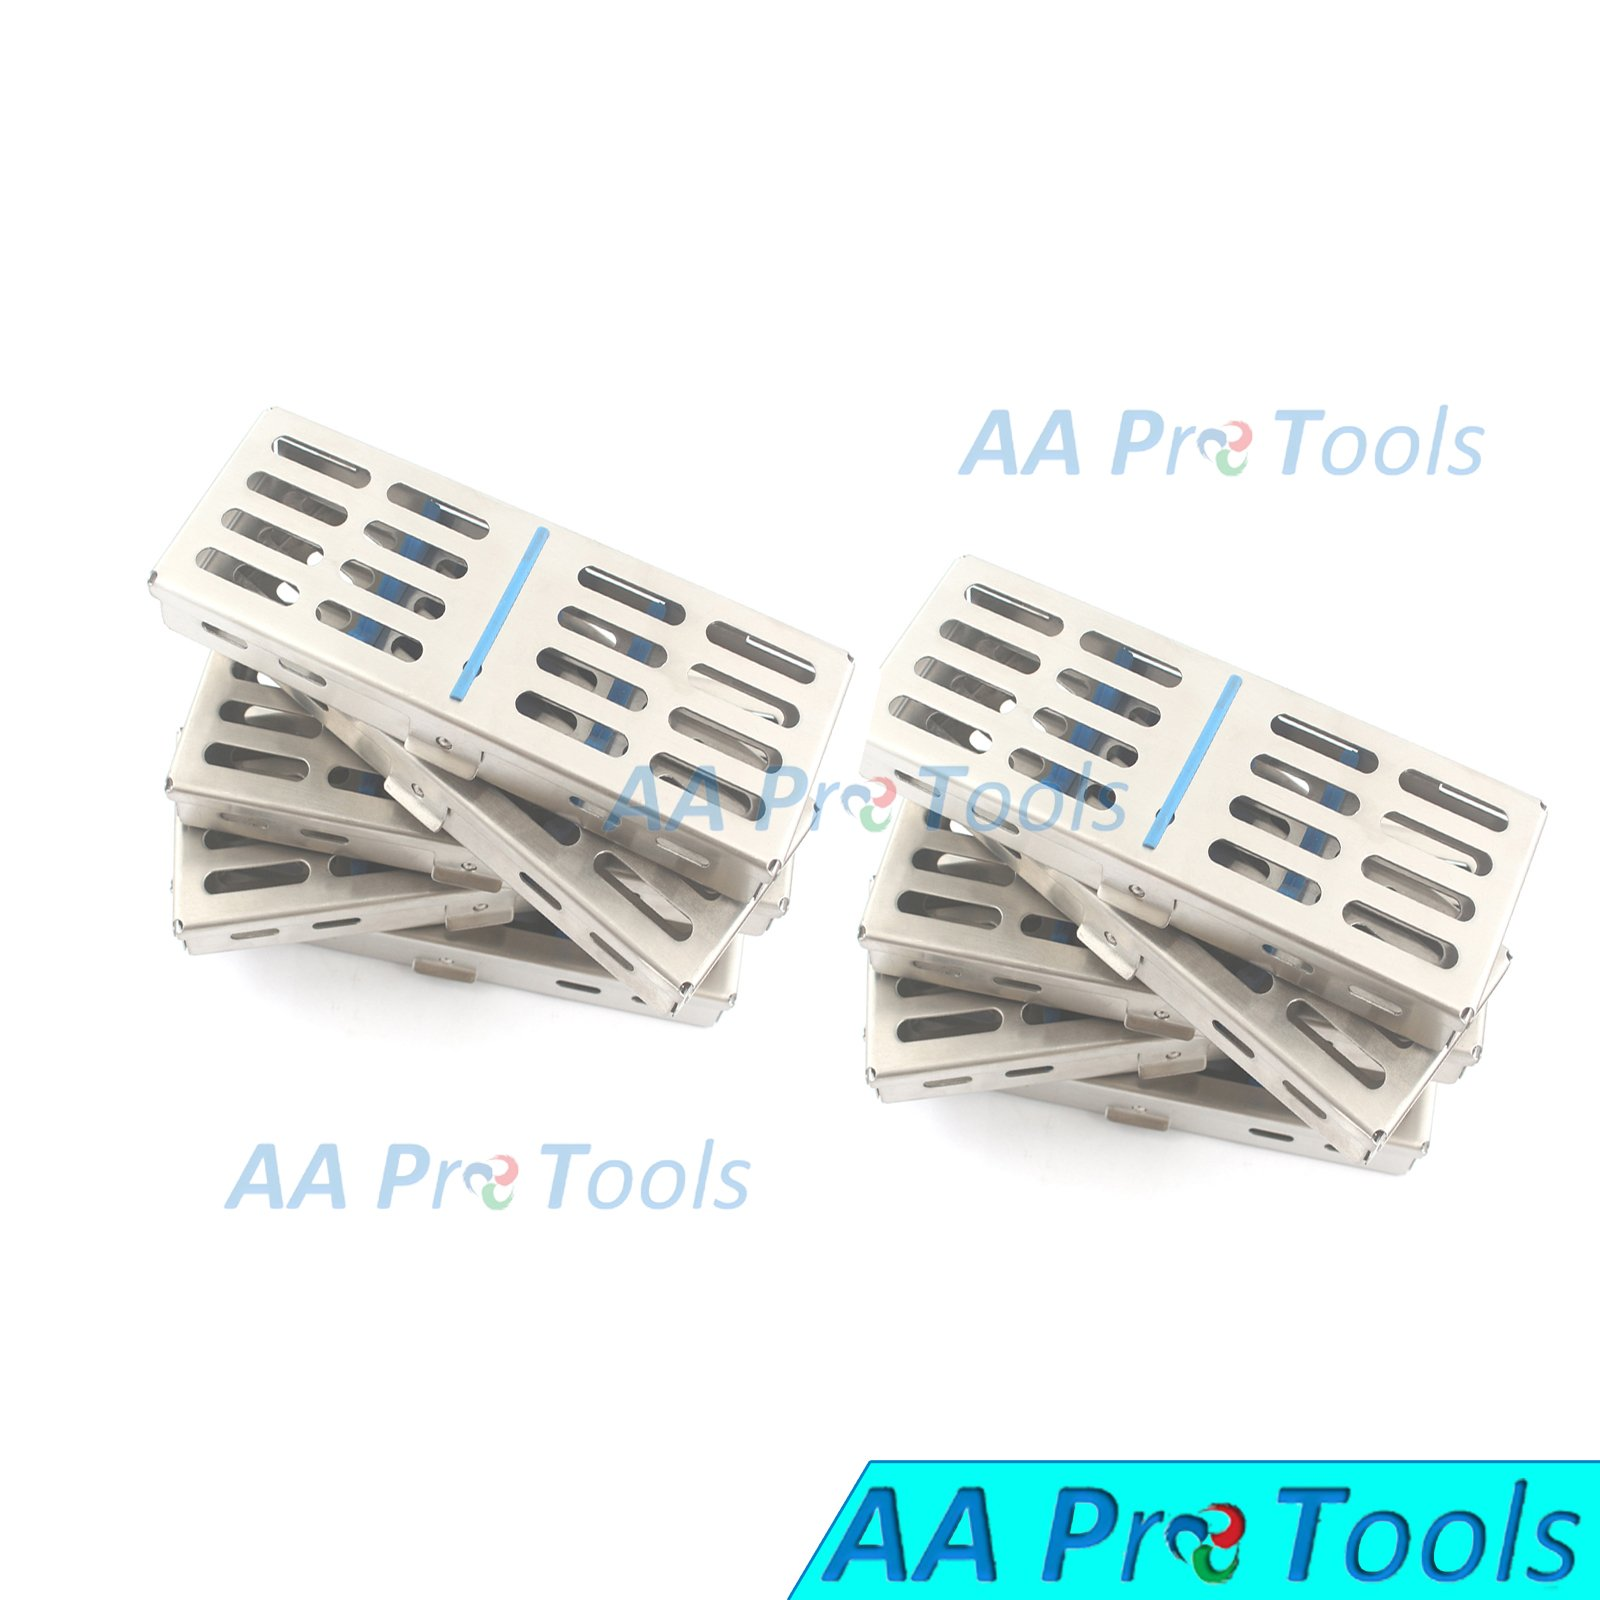 AA PRO NEW SET OF 10 EACH GERMAN GRADE DENTAL AUTOCLAVE STERILIZATION CASSETTE RACK BOX TRAY FOR 5 INSTRUMENT A+ QUALITY